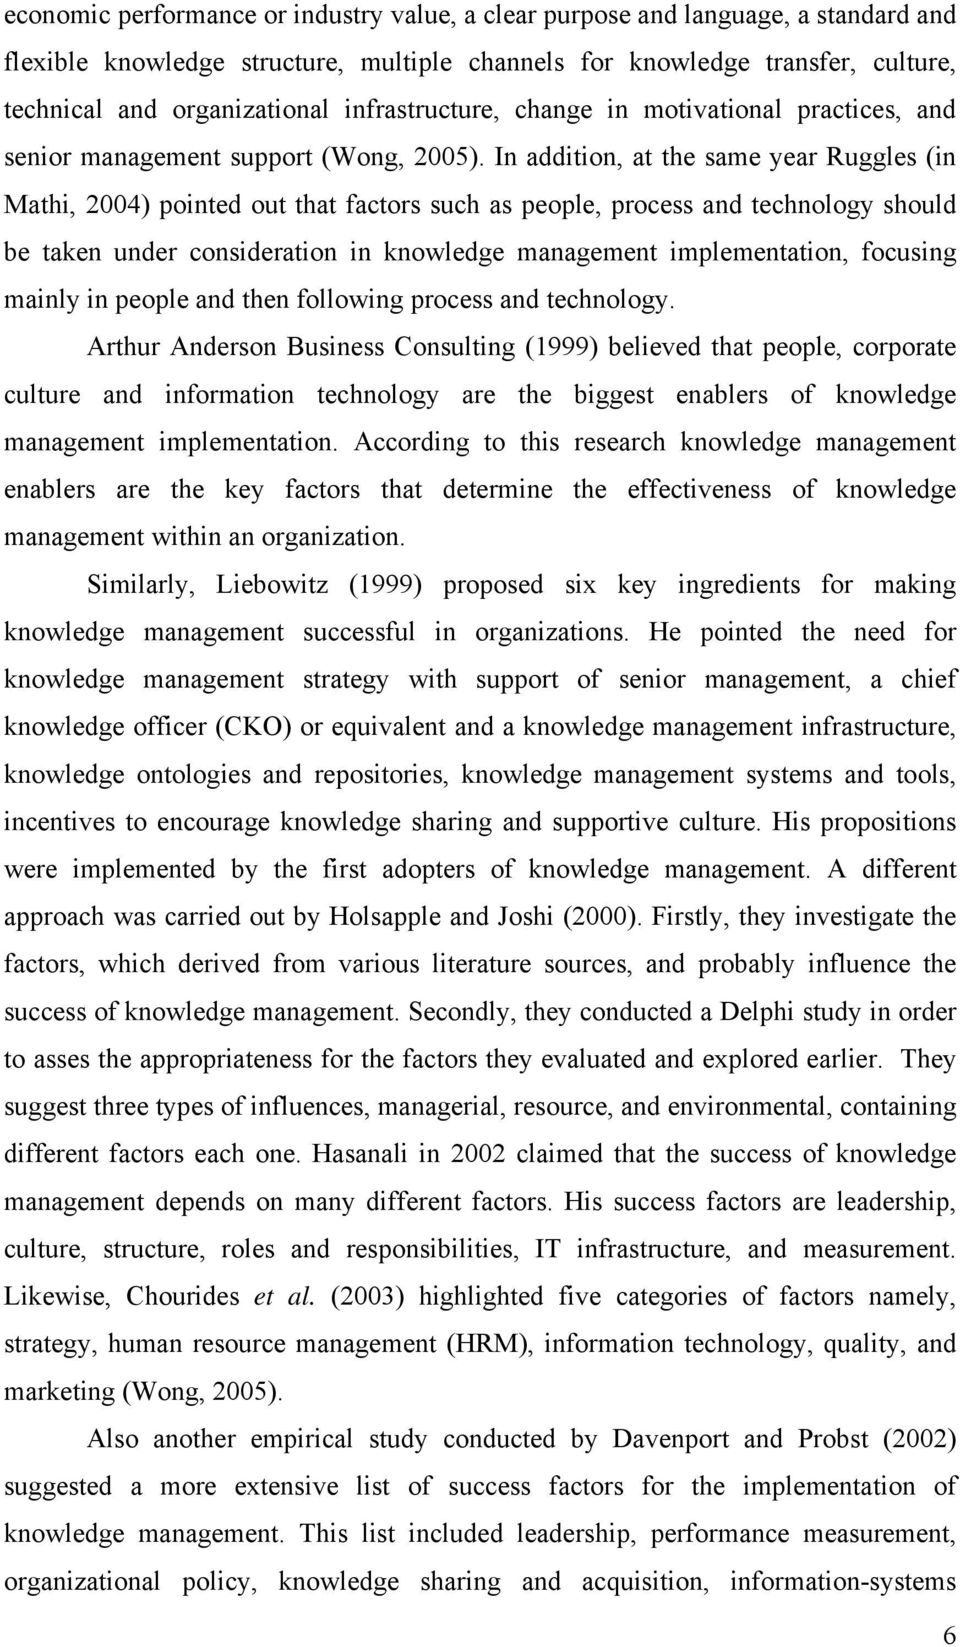 In addition, at the same year Ruggles (in Mathi, 2004) pointed out that factors such as people, process and technology should be taken under consideration in knowledge management implementation,